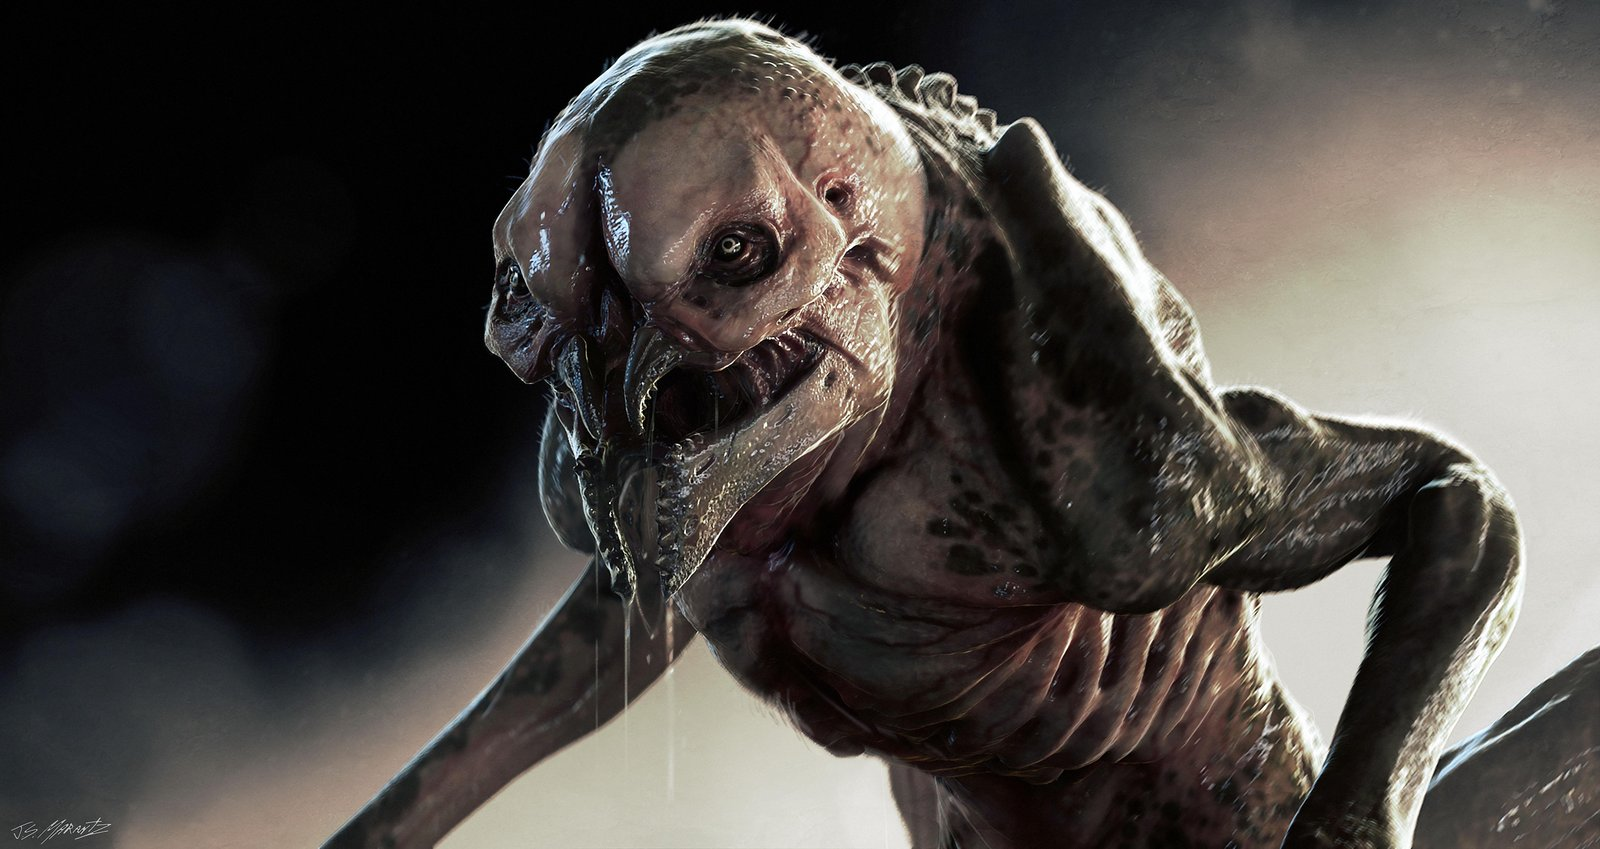 Gnomon master class 2014: Designing the Rock Grubber